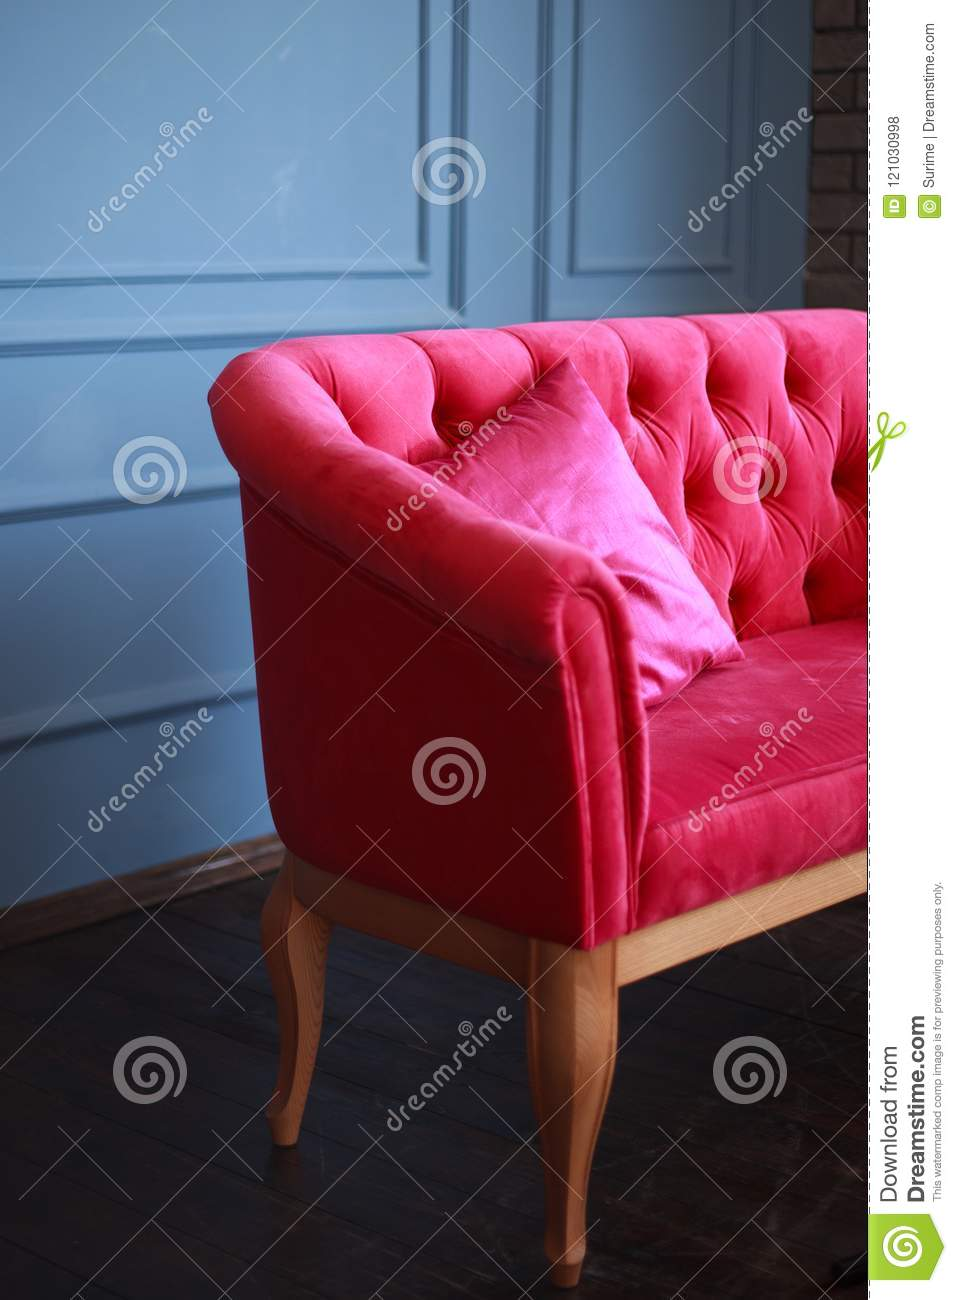 Remarkable Velvet Pink Sofa And Pink Satin Pillow Stock Photo Image Machost Co Dining Chair Design Ideas Machostcouk